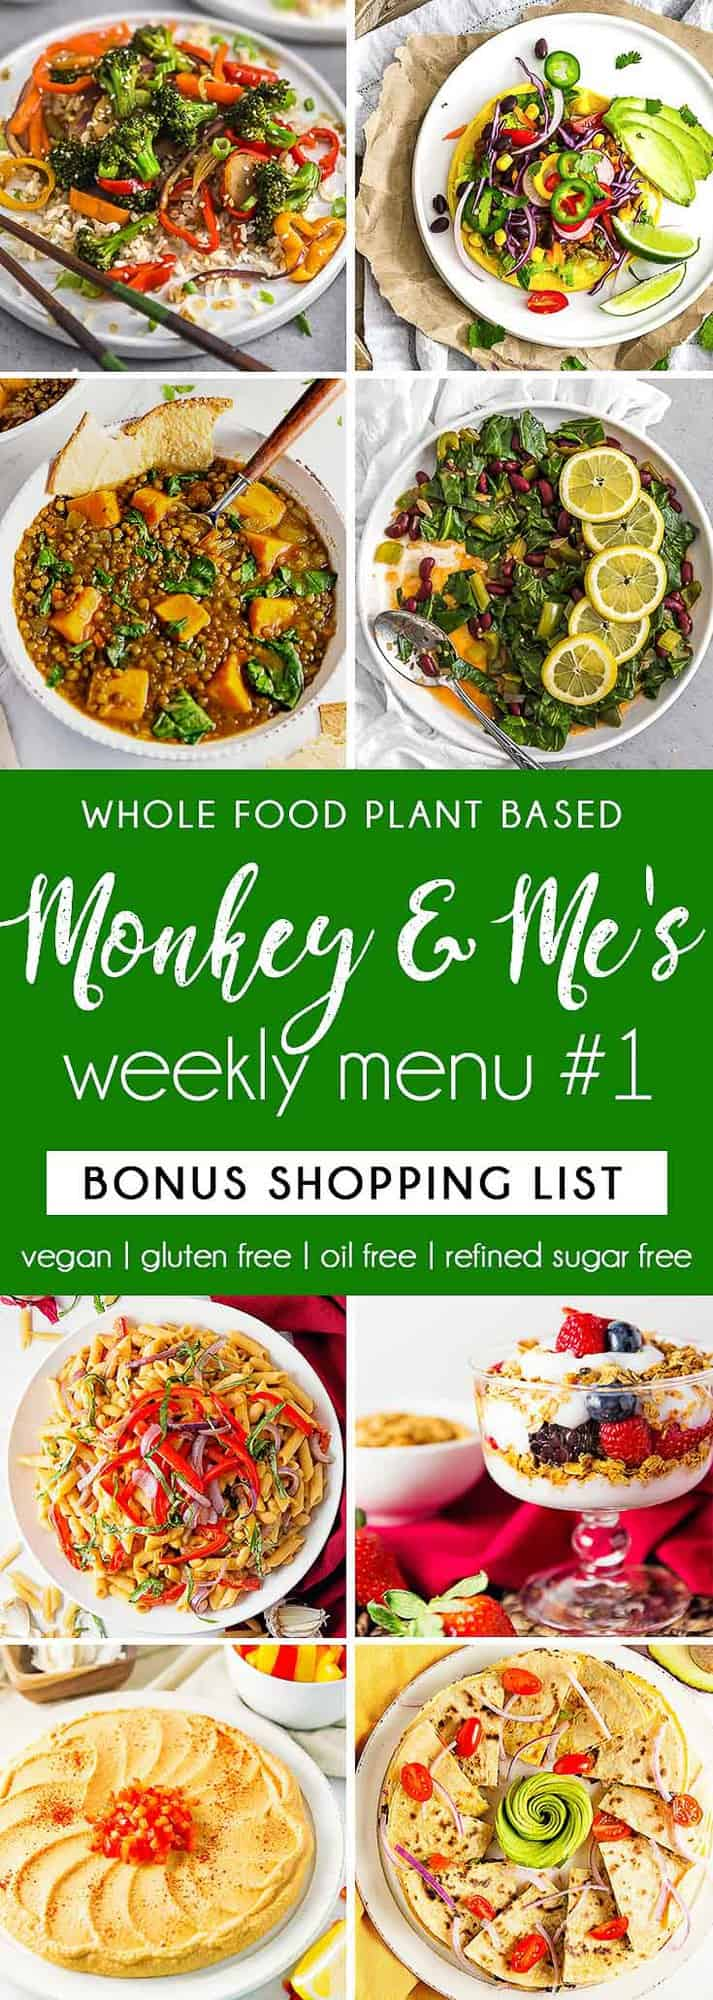 Monkey and Me's Menu, Menu 1, weekly recipe plan, menu, planner, plant based, vegan, vegetarian, whole food plant based, gluten free, recipe, wfpb, healthy, healthy vegan, oil free, no refined sugar, no oil, refined sugar free, dairy free, dinner, lunch, menu, plant based menu, vegan menu, weekly menu, meal plan, vegan meal plan, plant based meal plan, shopping list